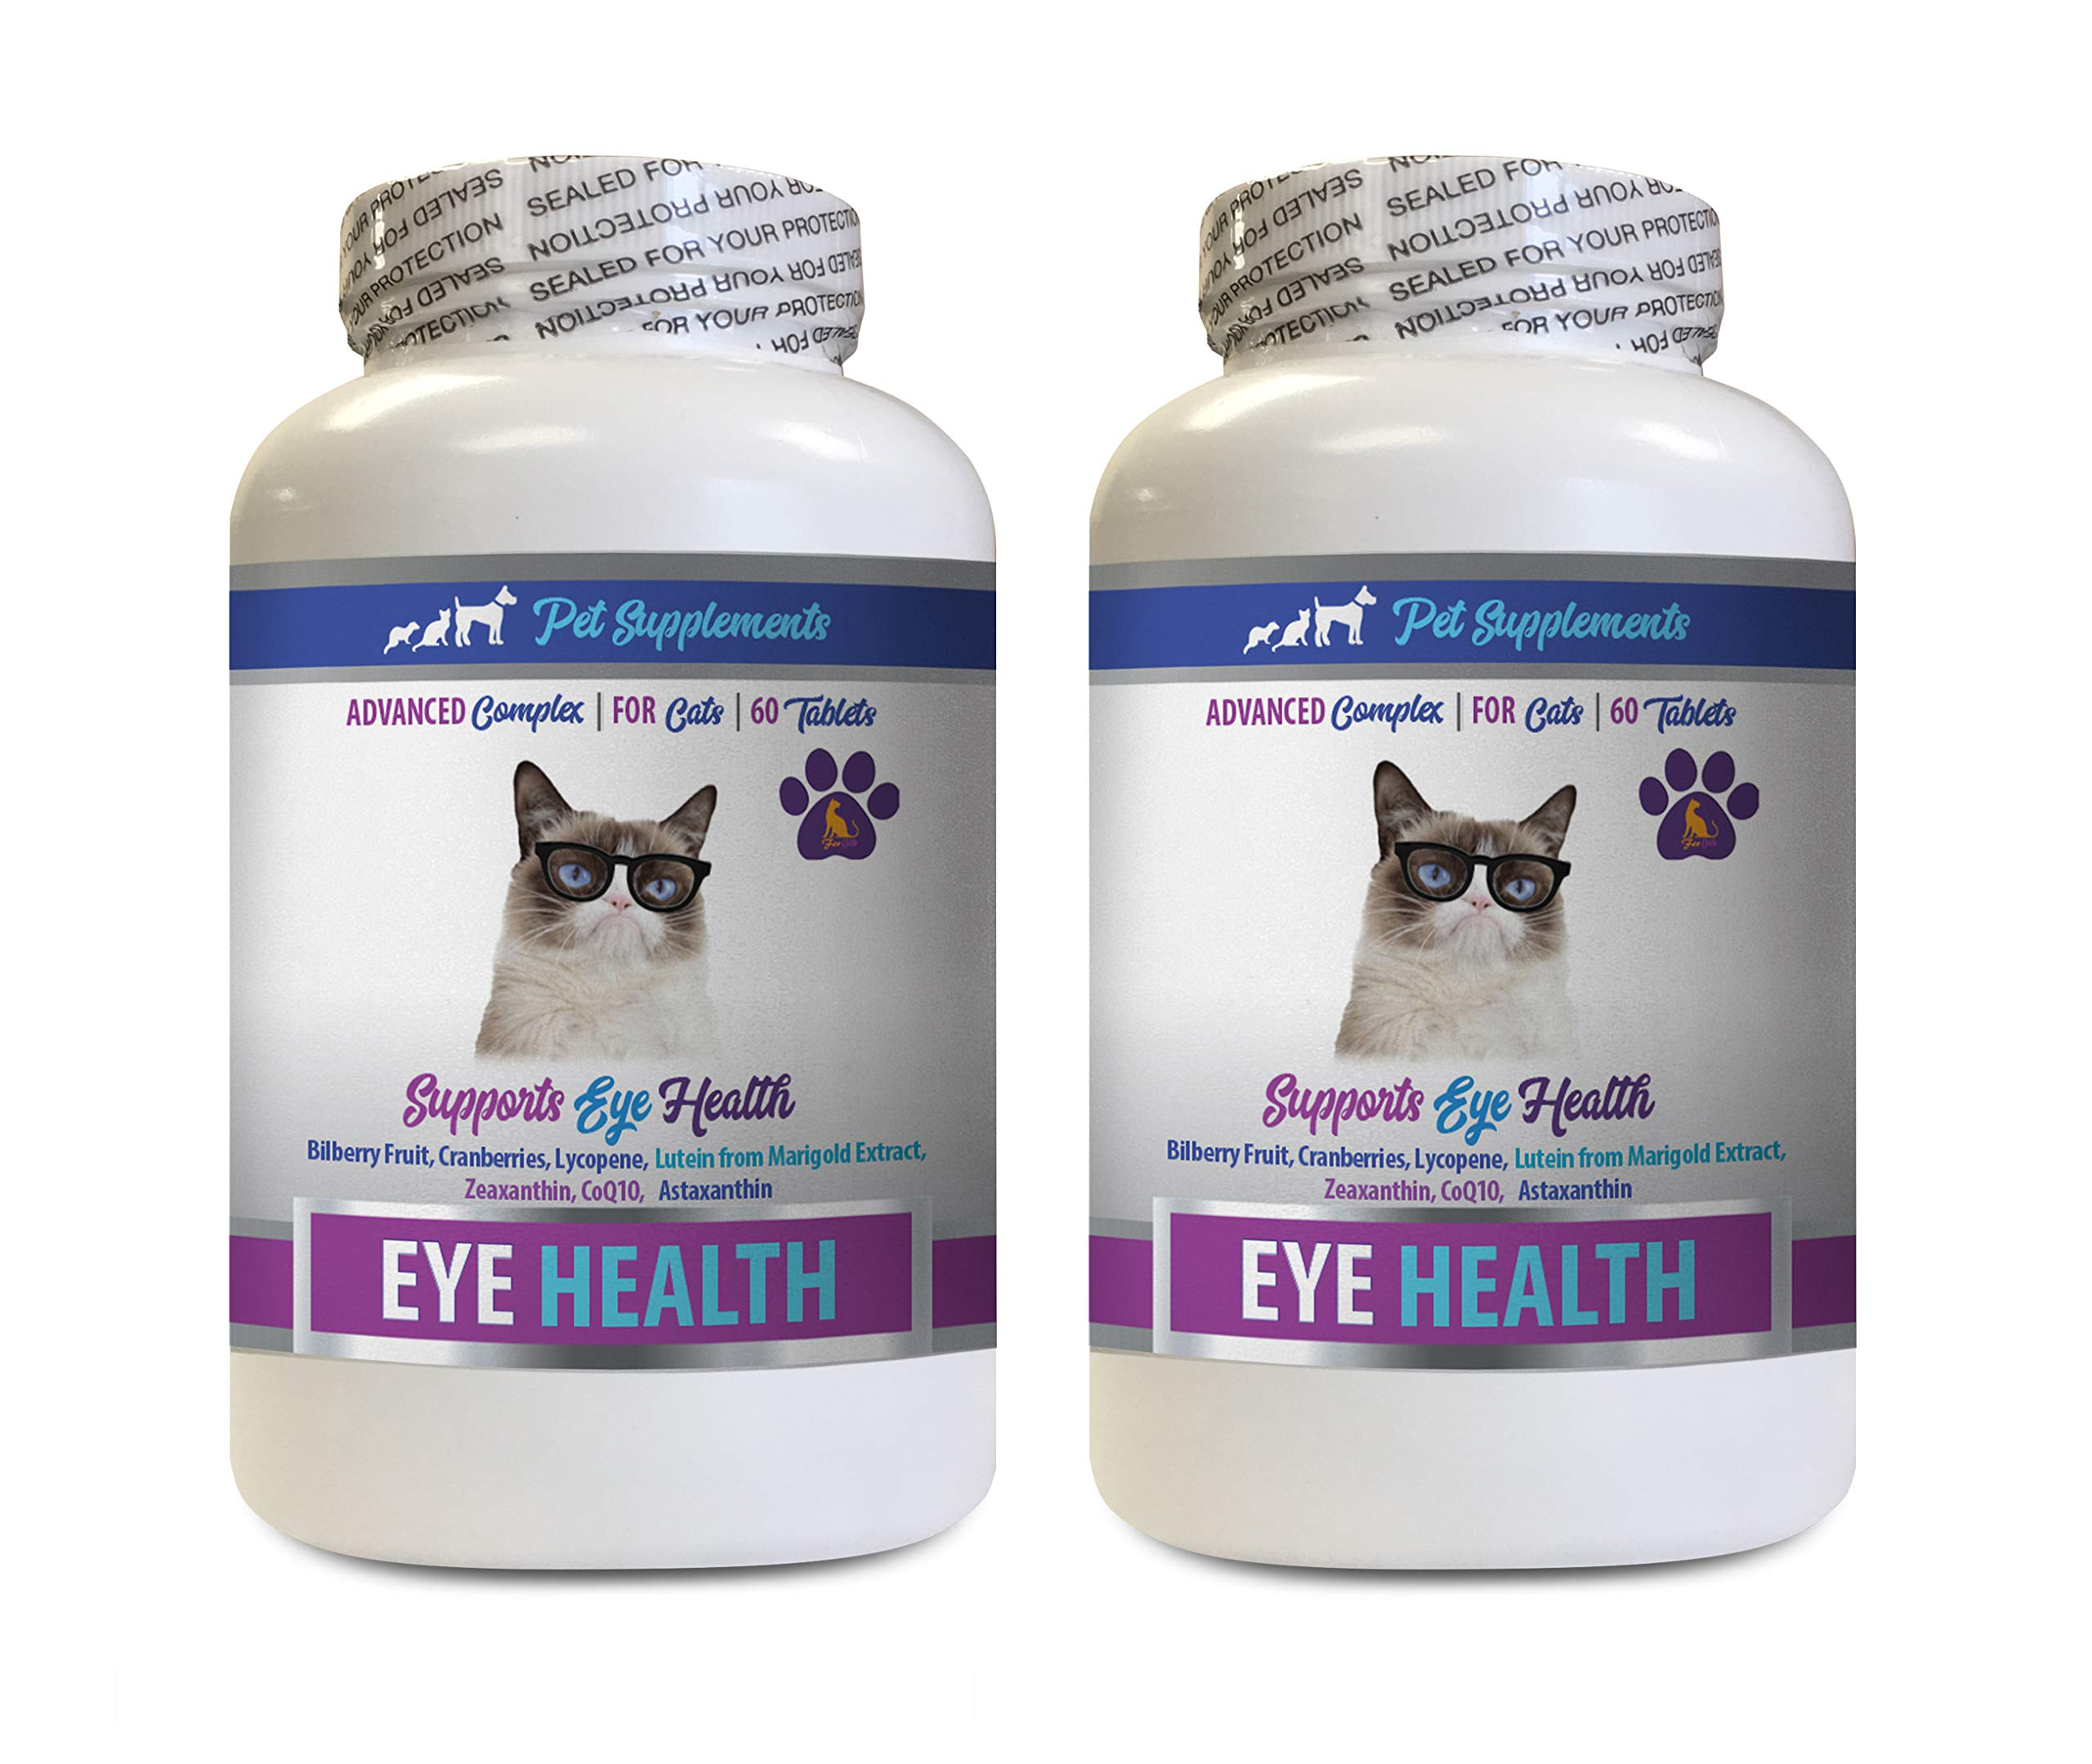 PET SUPPLEMENTS cat Eyesight Supplement - Cats Eye Health Complex - Advanced Formula for Eye Sight - Immune Boost - Bilberry for Cats - 2 Bottles (120 Tablets) by PET SUPPLEMENTS (Image #1)